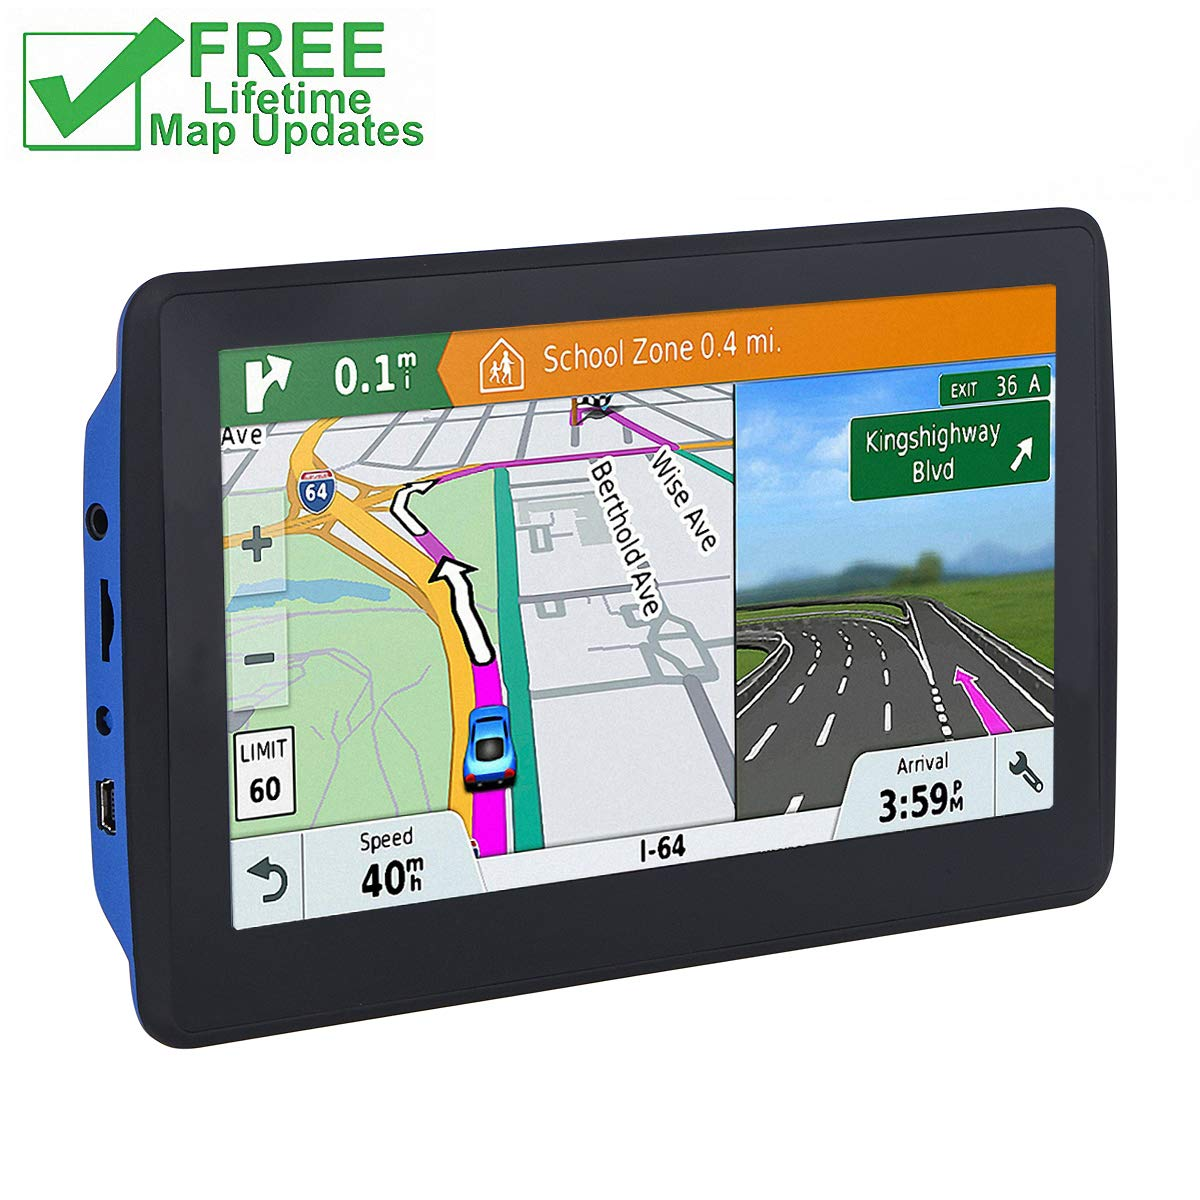 7 inch Car GPS, Navigation System Lifetime Map Updates Touch Screen Real Voice Direction Vehicle GPS Navigation for Cars (black-001) by Highsound